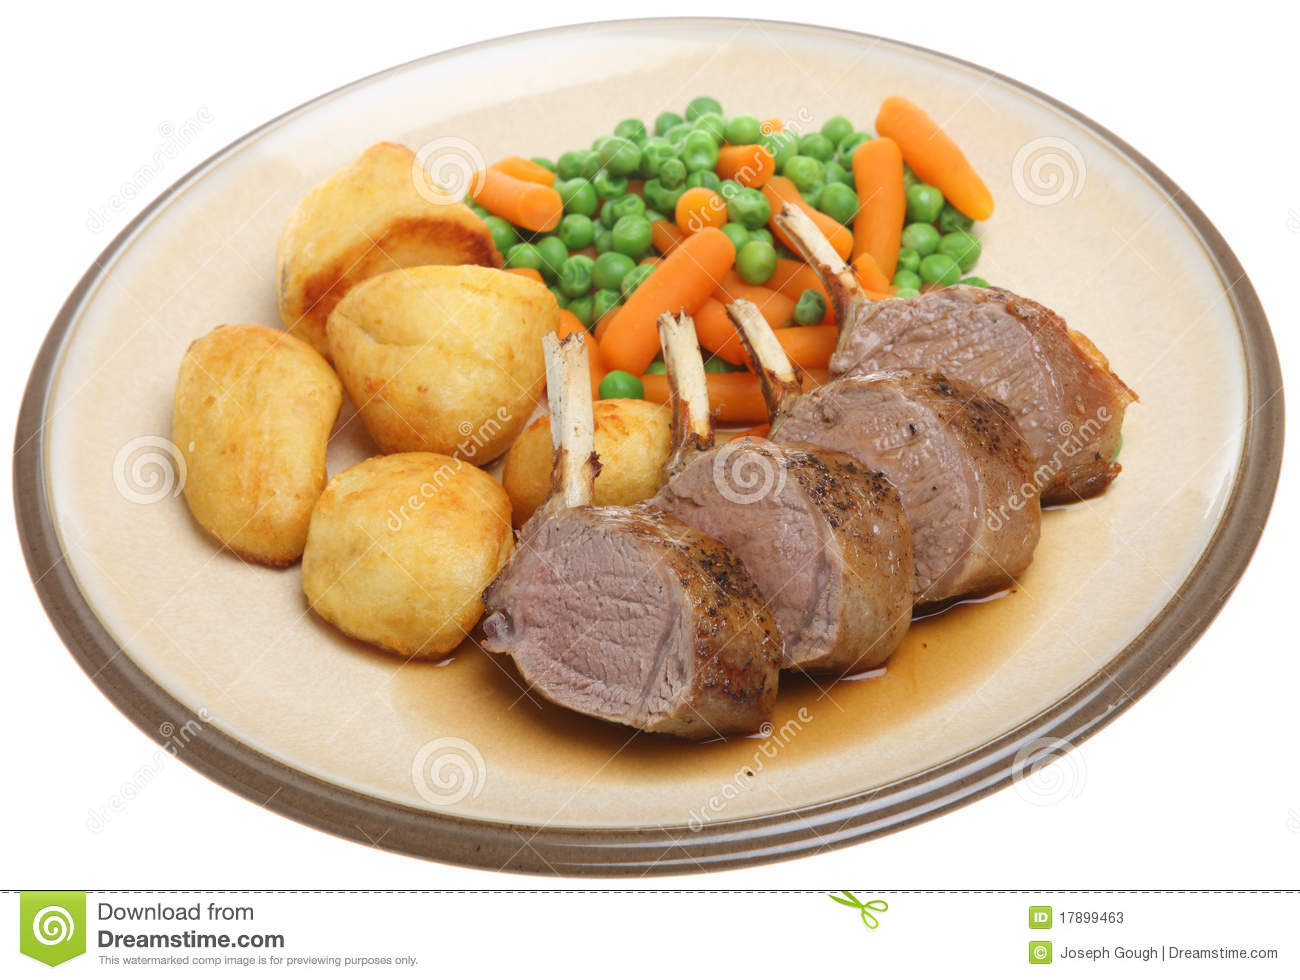 Roast Rack Of Lamb Dinner Stock Photos - Image: 17899463